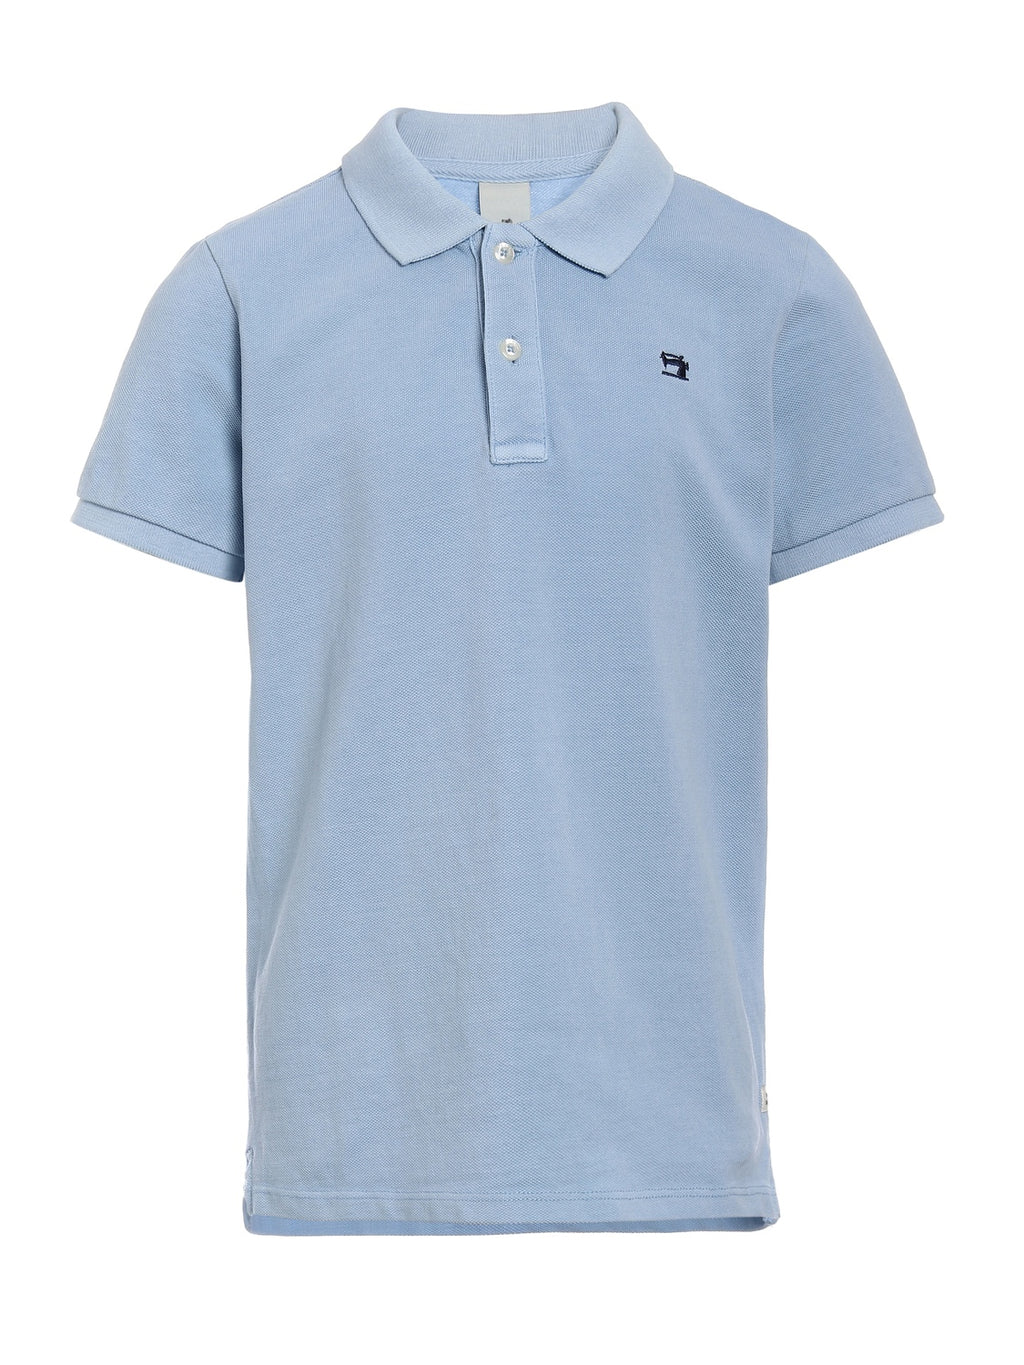 Designer Kids Fashion at Bloom Moda Online Children's Boutique - Scotch & Soda Pique Polo,  Shirt